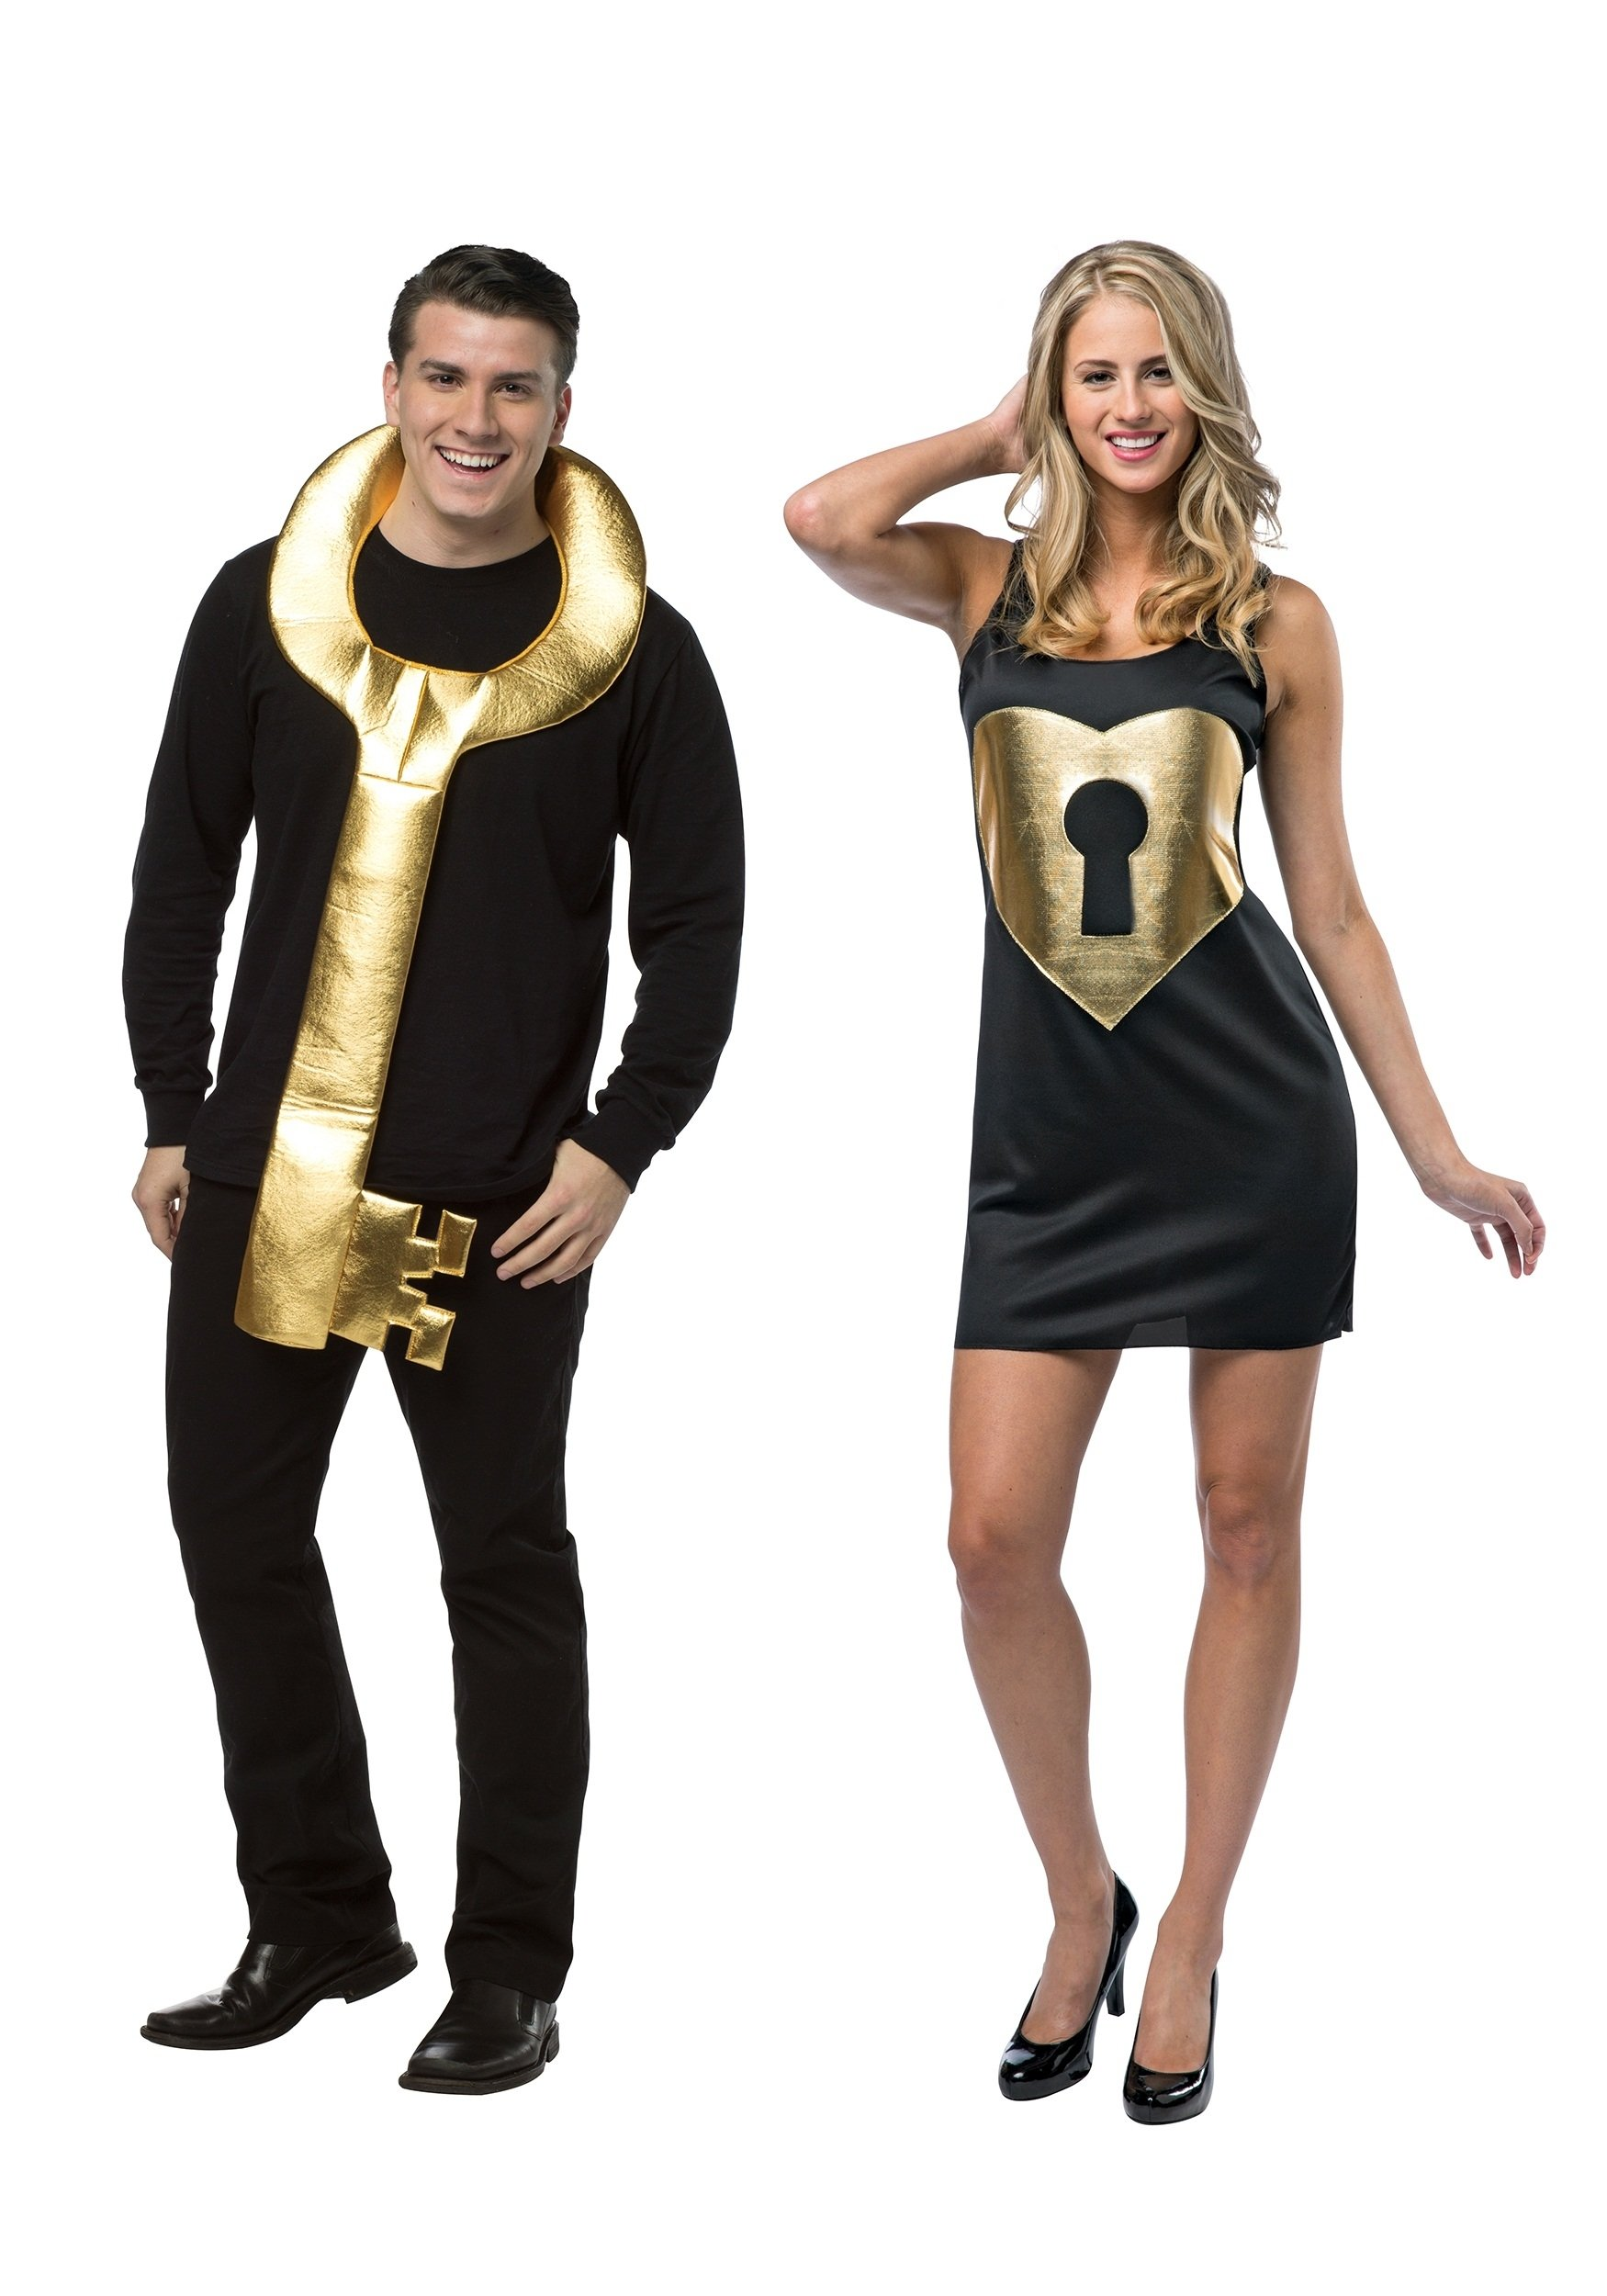 10 Stylish Cute Couples Halloween Costume Ideas lock and key couples costume 2021